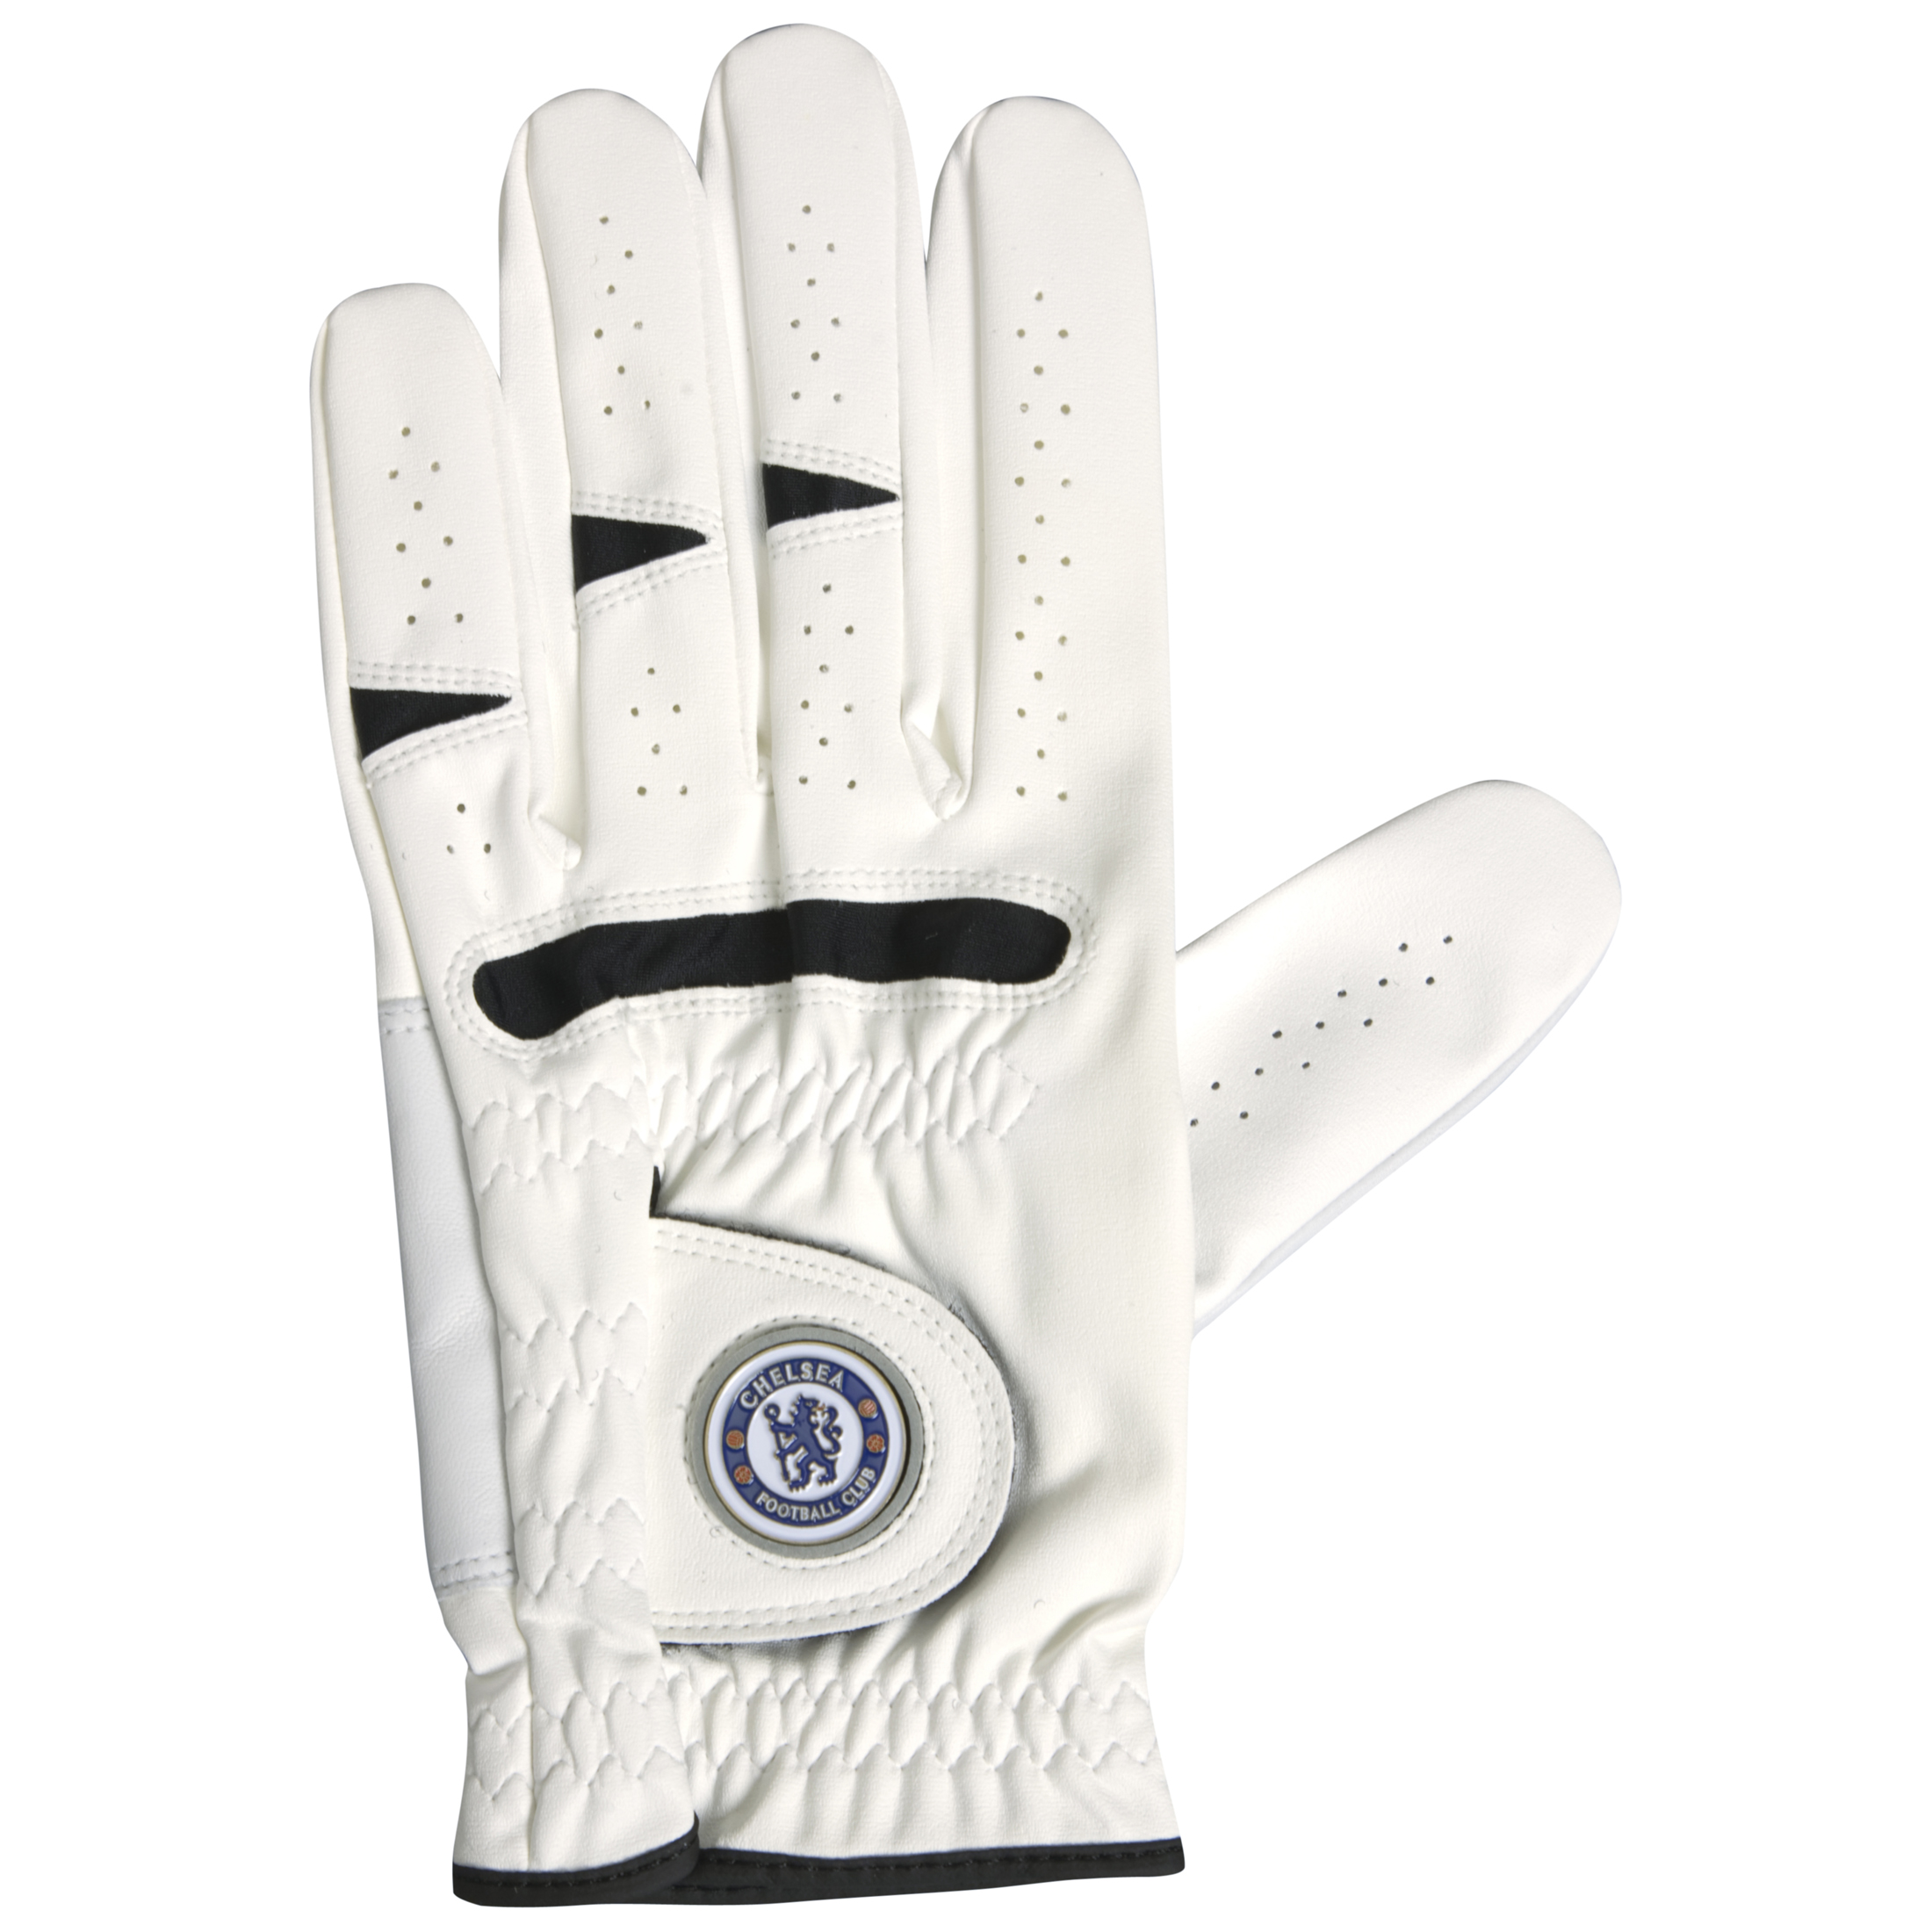 Chelsea Golf Glove